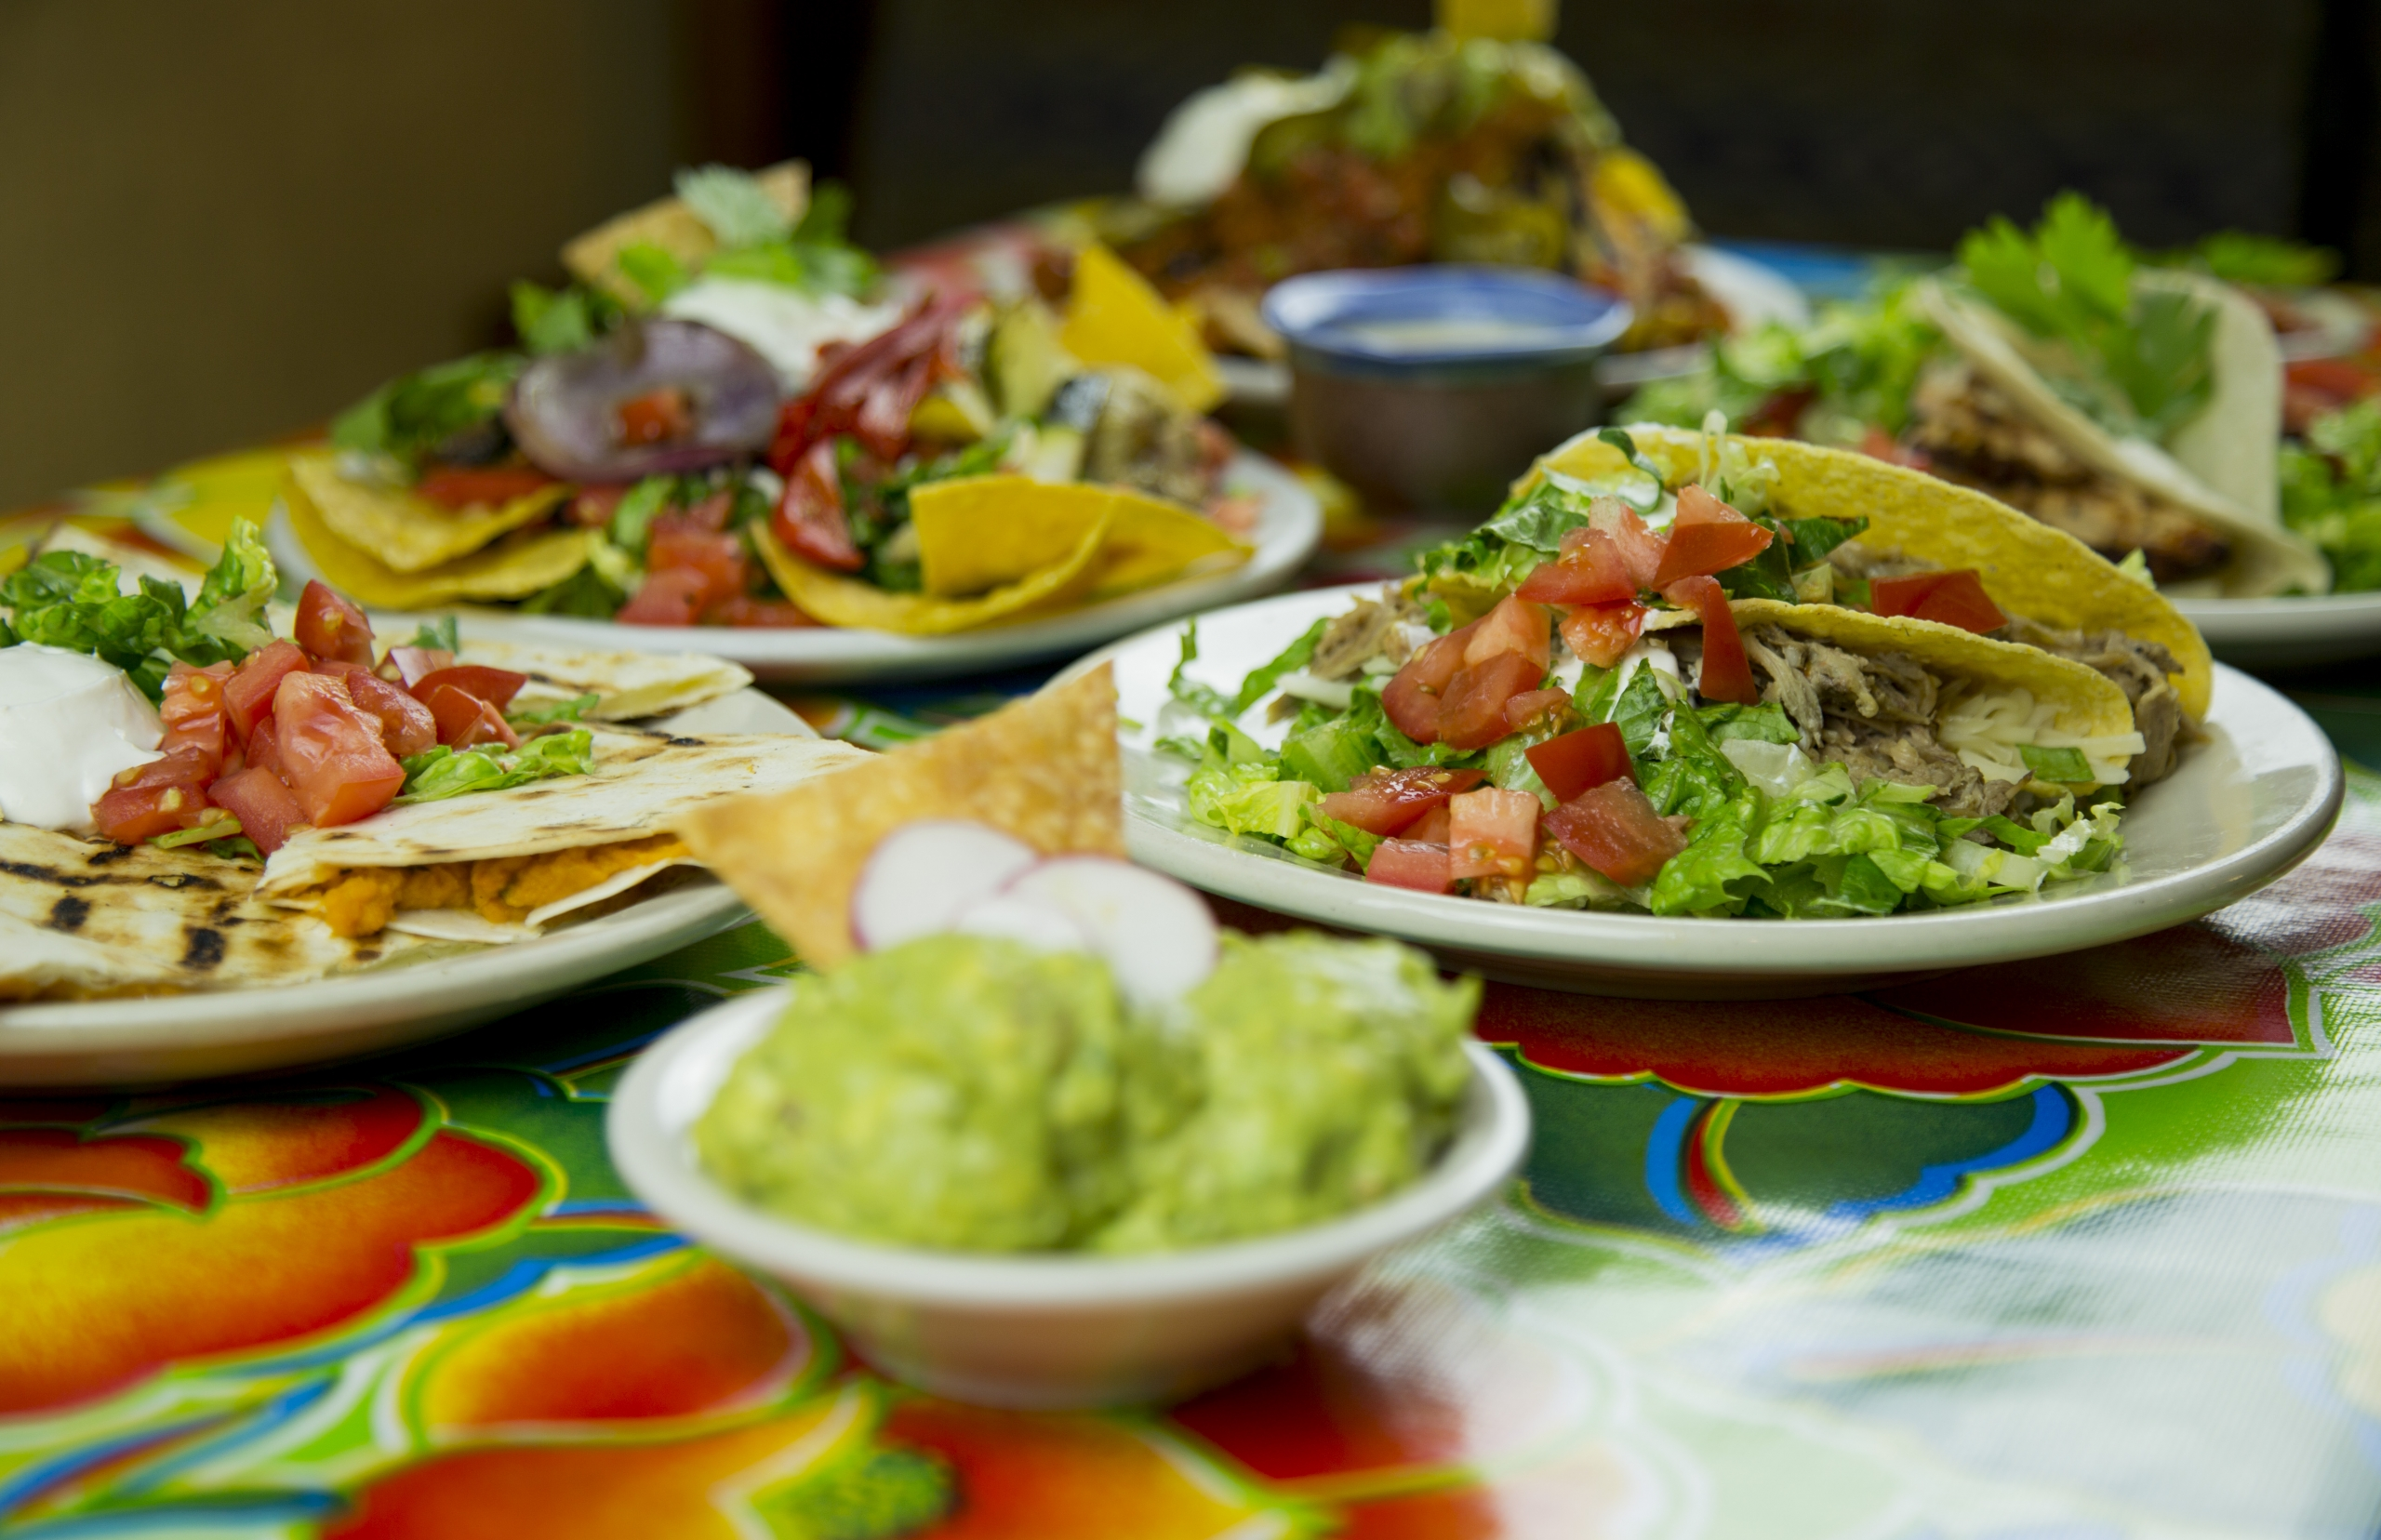 Various tacos on plates sides like guacamole and chips and salsas.